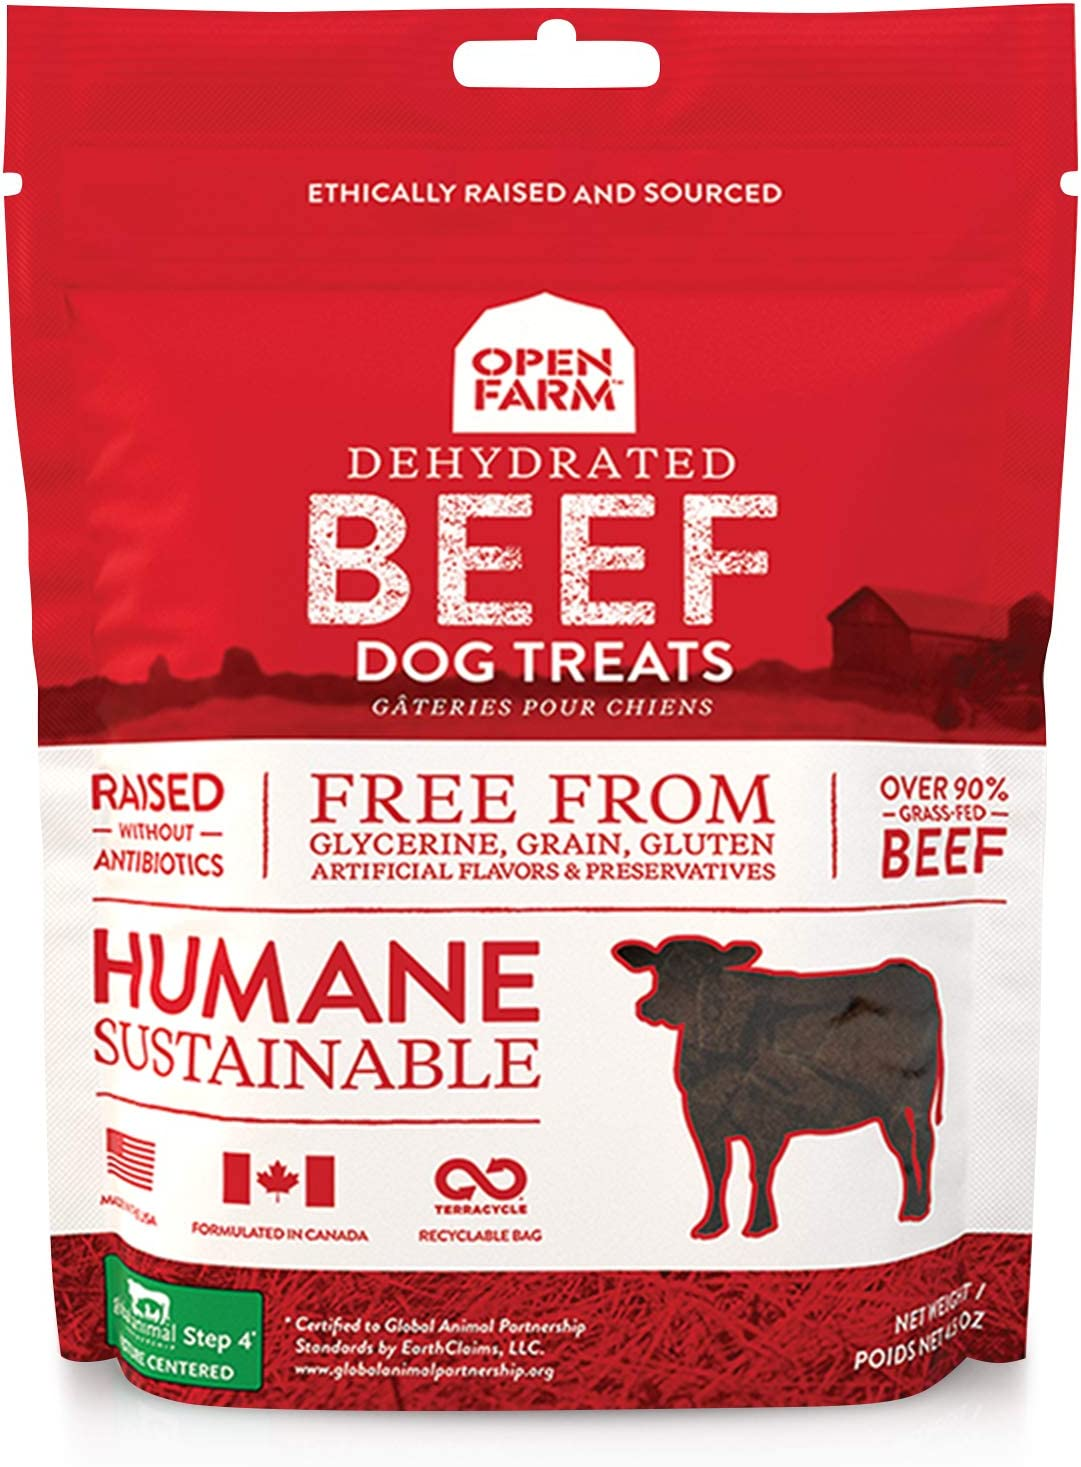 Open Farm Dehydrated Beef Grain-Free Dog Treats, 100% Grass-Fed Beef Recipe with Natural Simple Ingredients and No Artificial Flavors or Preservatives, 4.5 oz